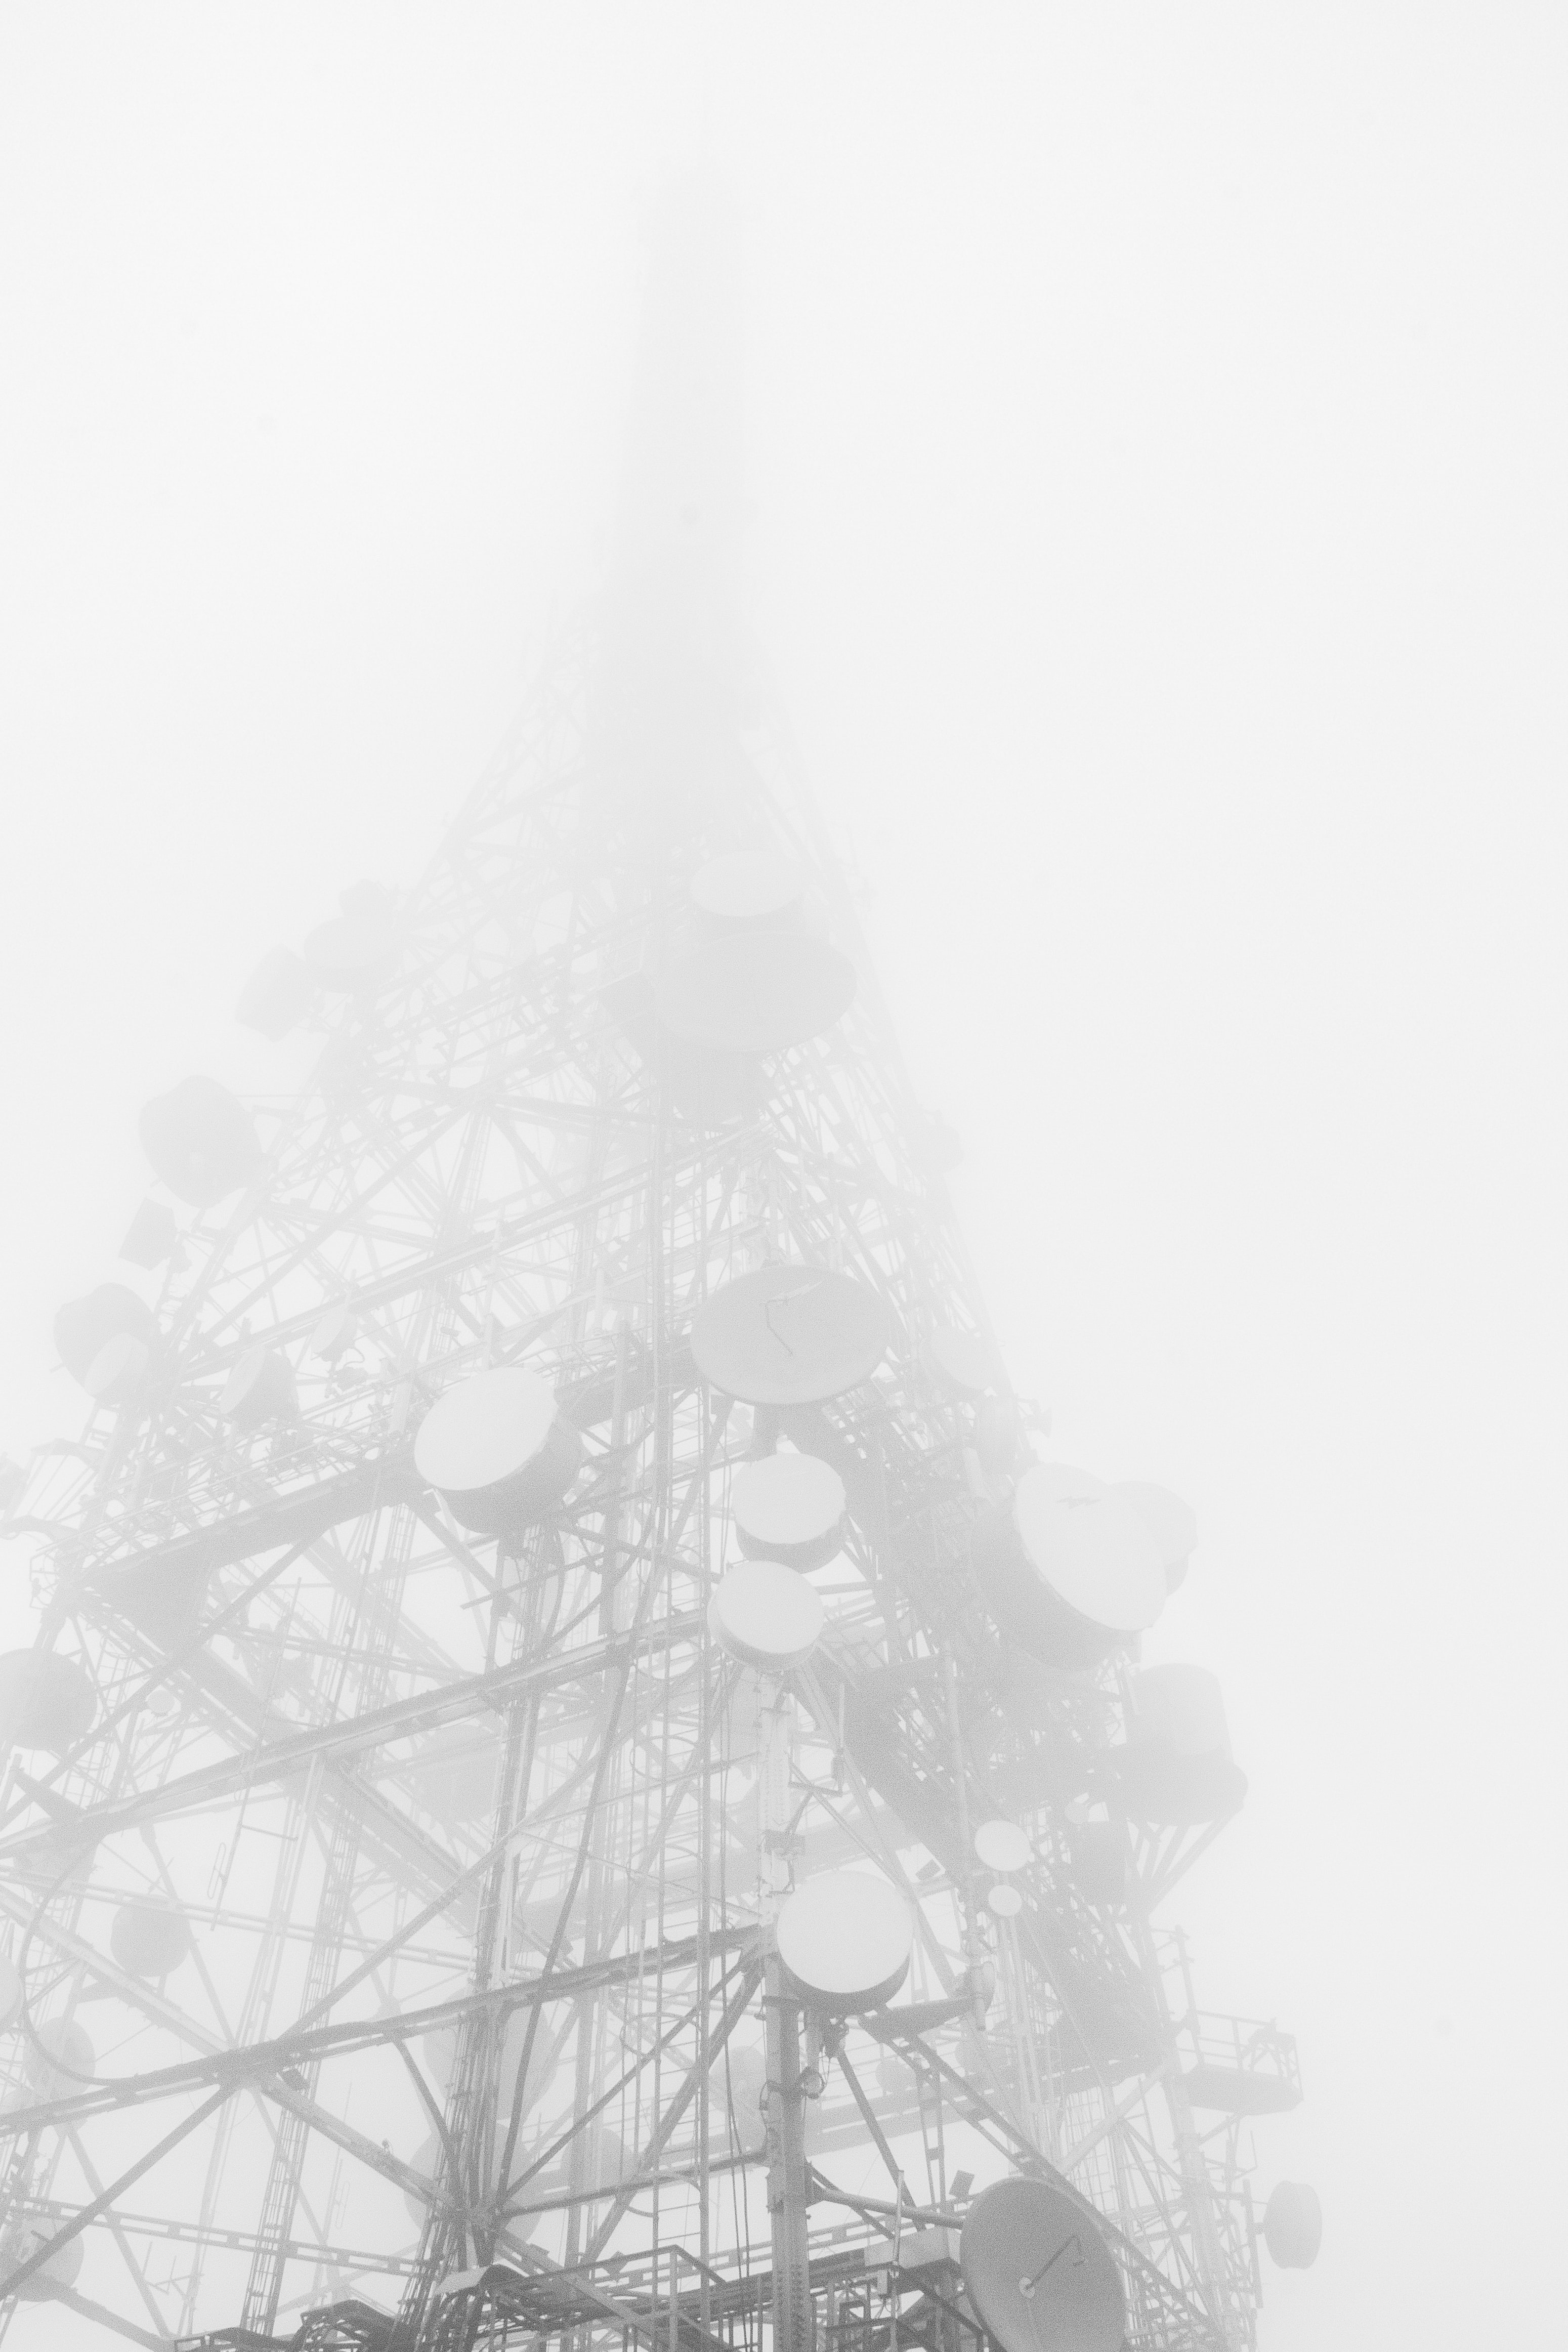 gray telecommunications tower during foggy day